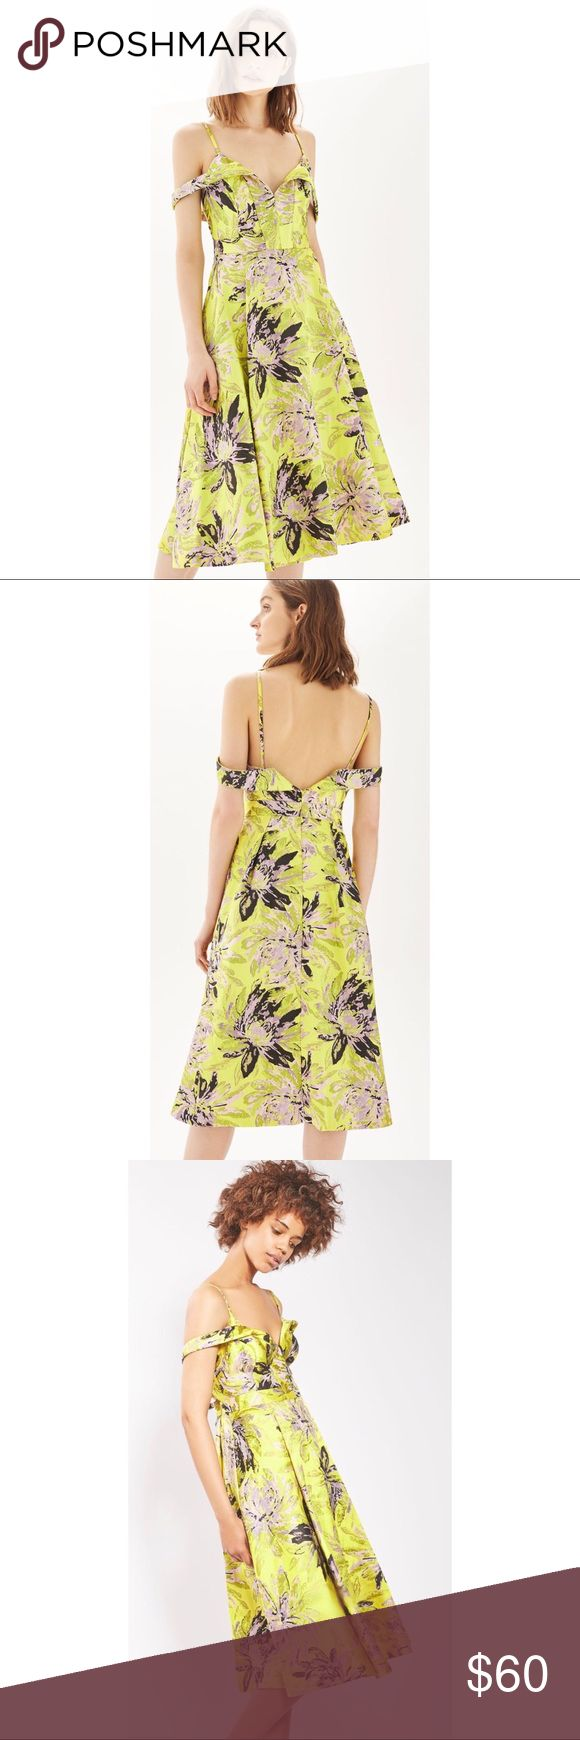 TOPSHOP Yellow Floral Jacquard Midi Prom Dress New Without Tags!  $210 TOPSHOP Yellow Floral Metallic Jacquard Midi Prom Dress  A sunny spring wedding or school dance with your closest gal pals, this '50s-inspired midi dress covered in lush metallic blossoms is ready to take you there in elegant style.  Garment is labeled:  EUR 36, US 4, UK 8. Fits like a US 0-2.  - Hidden back zip closure  - Sweetheart off-the-shoulder neck  - Thin straps  - Pleated skirt  - Lined  - 94% polyester, 6%…